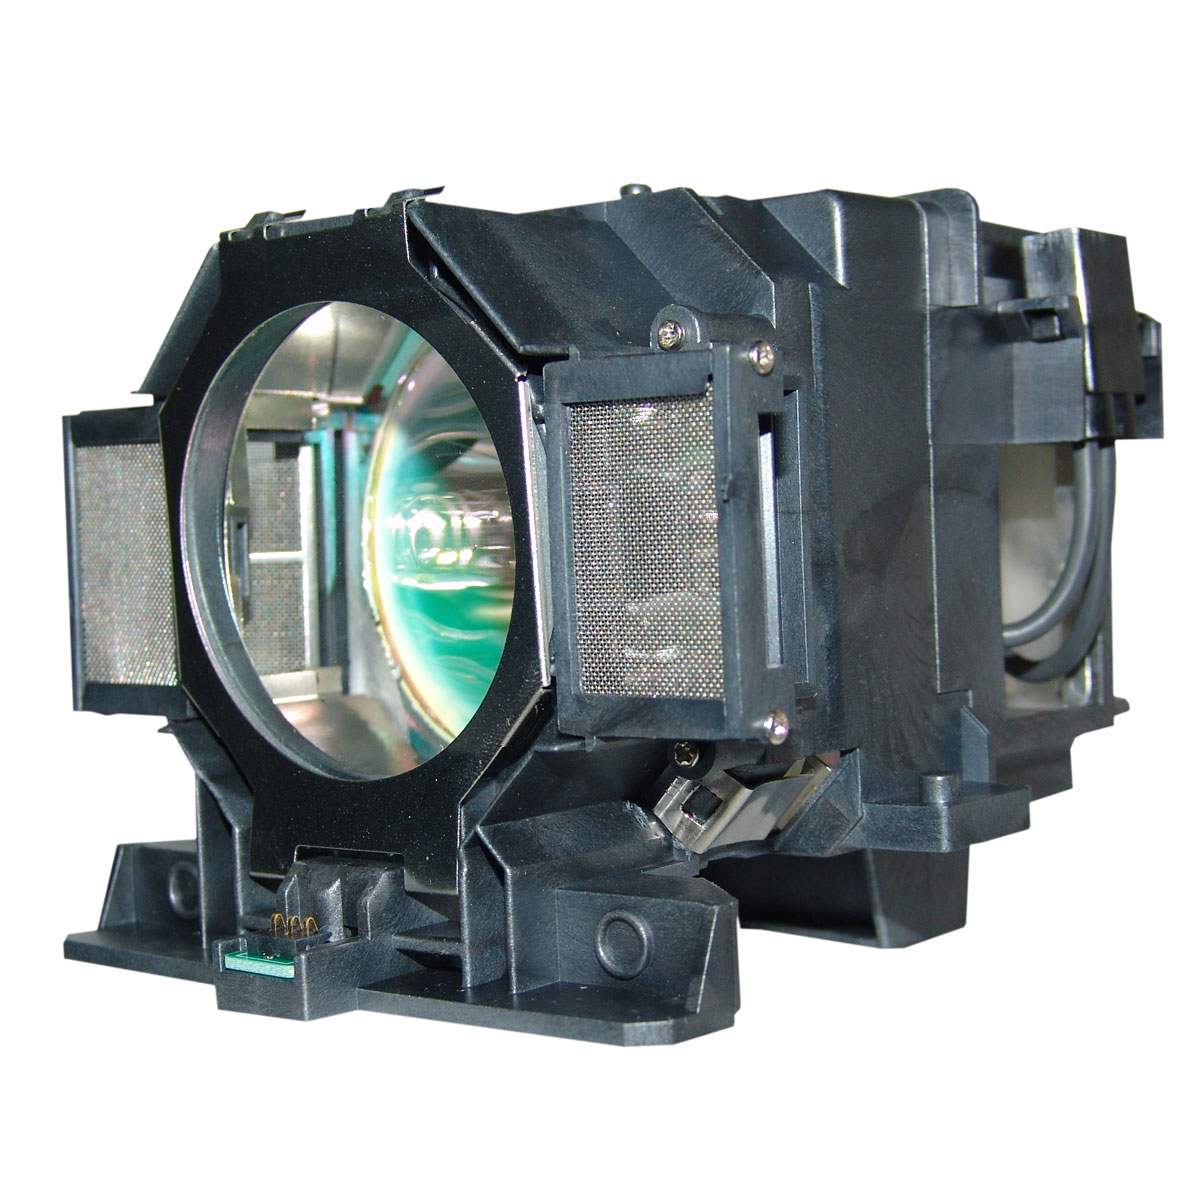 epson projector how to change bulb